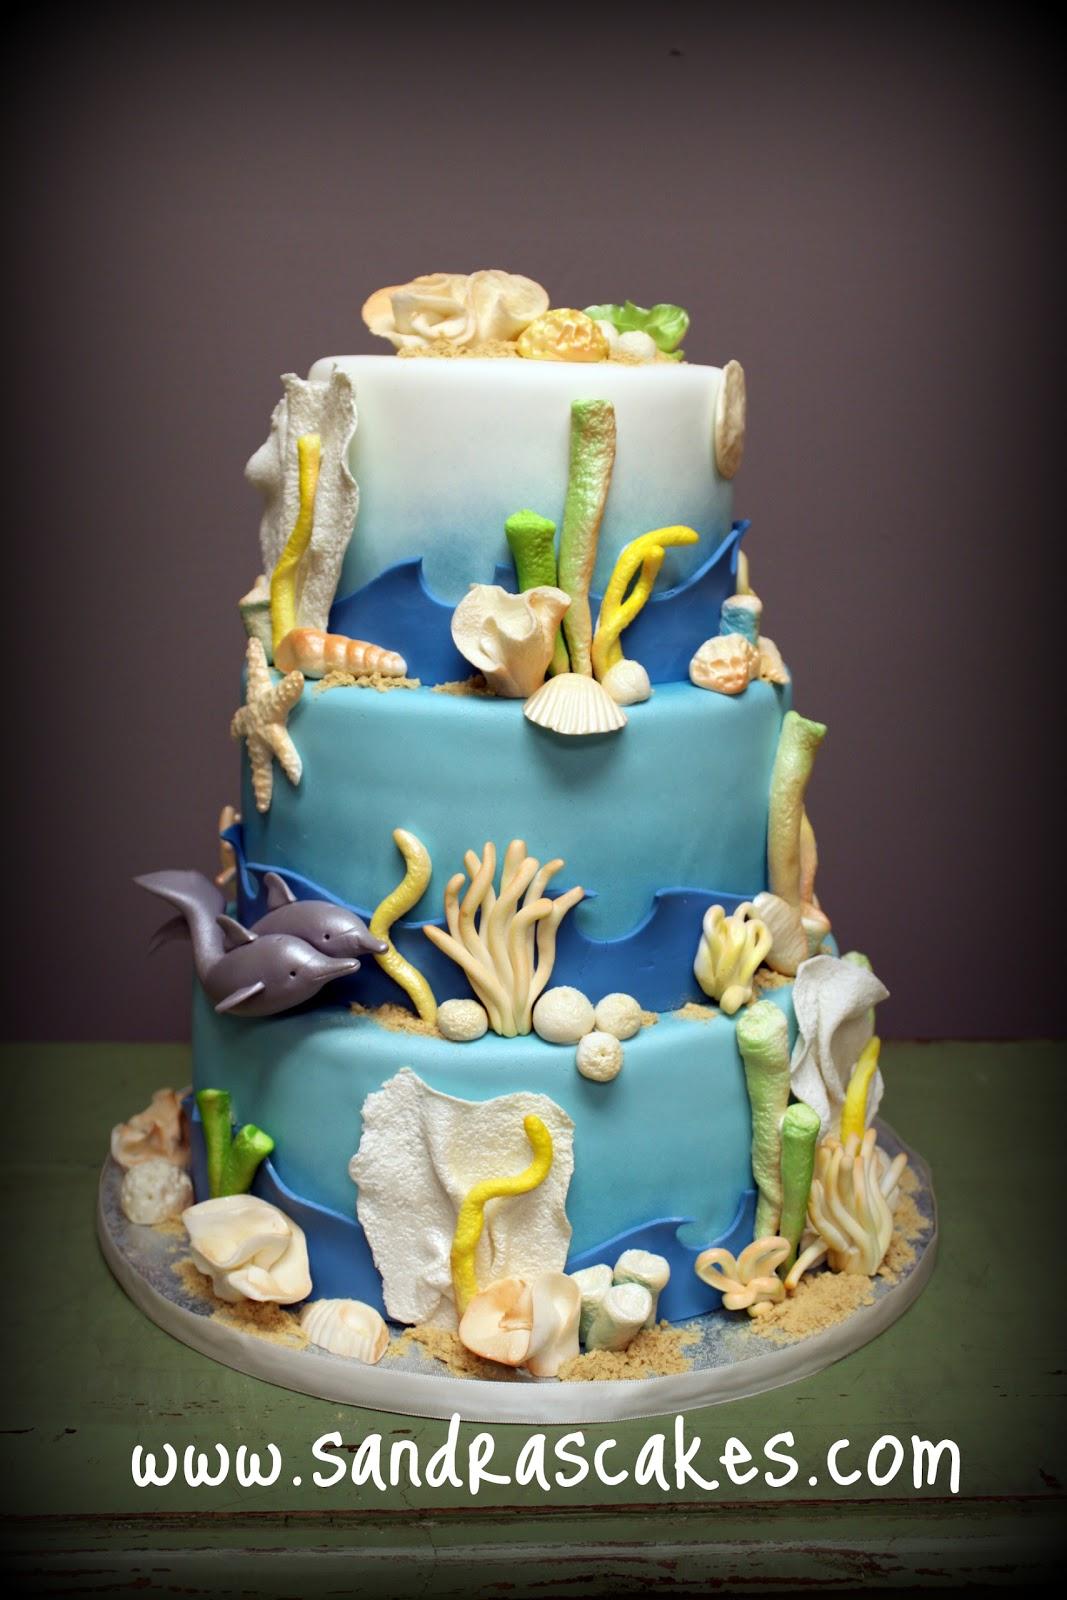 Every Detail On This Cake Was Handcrafted Using Sugar Paste Definitely An Edible Work Of Art